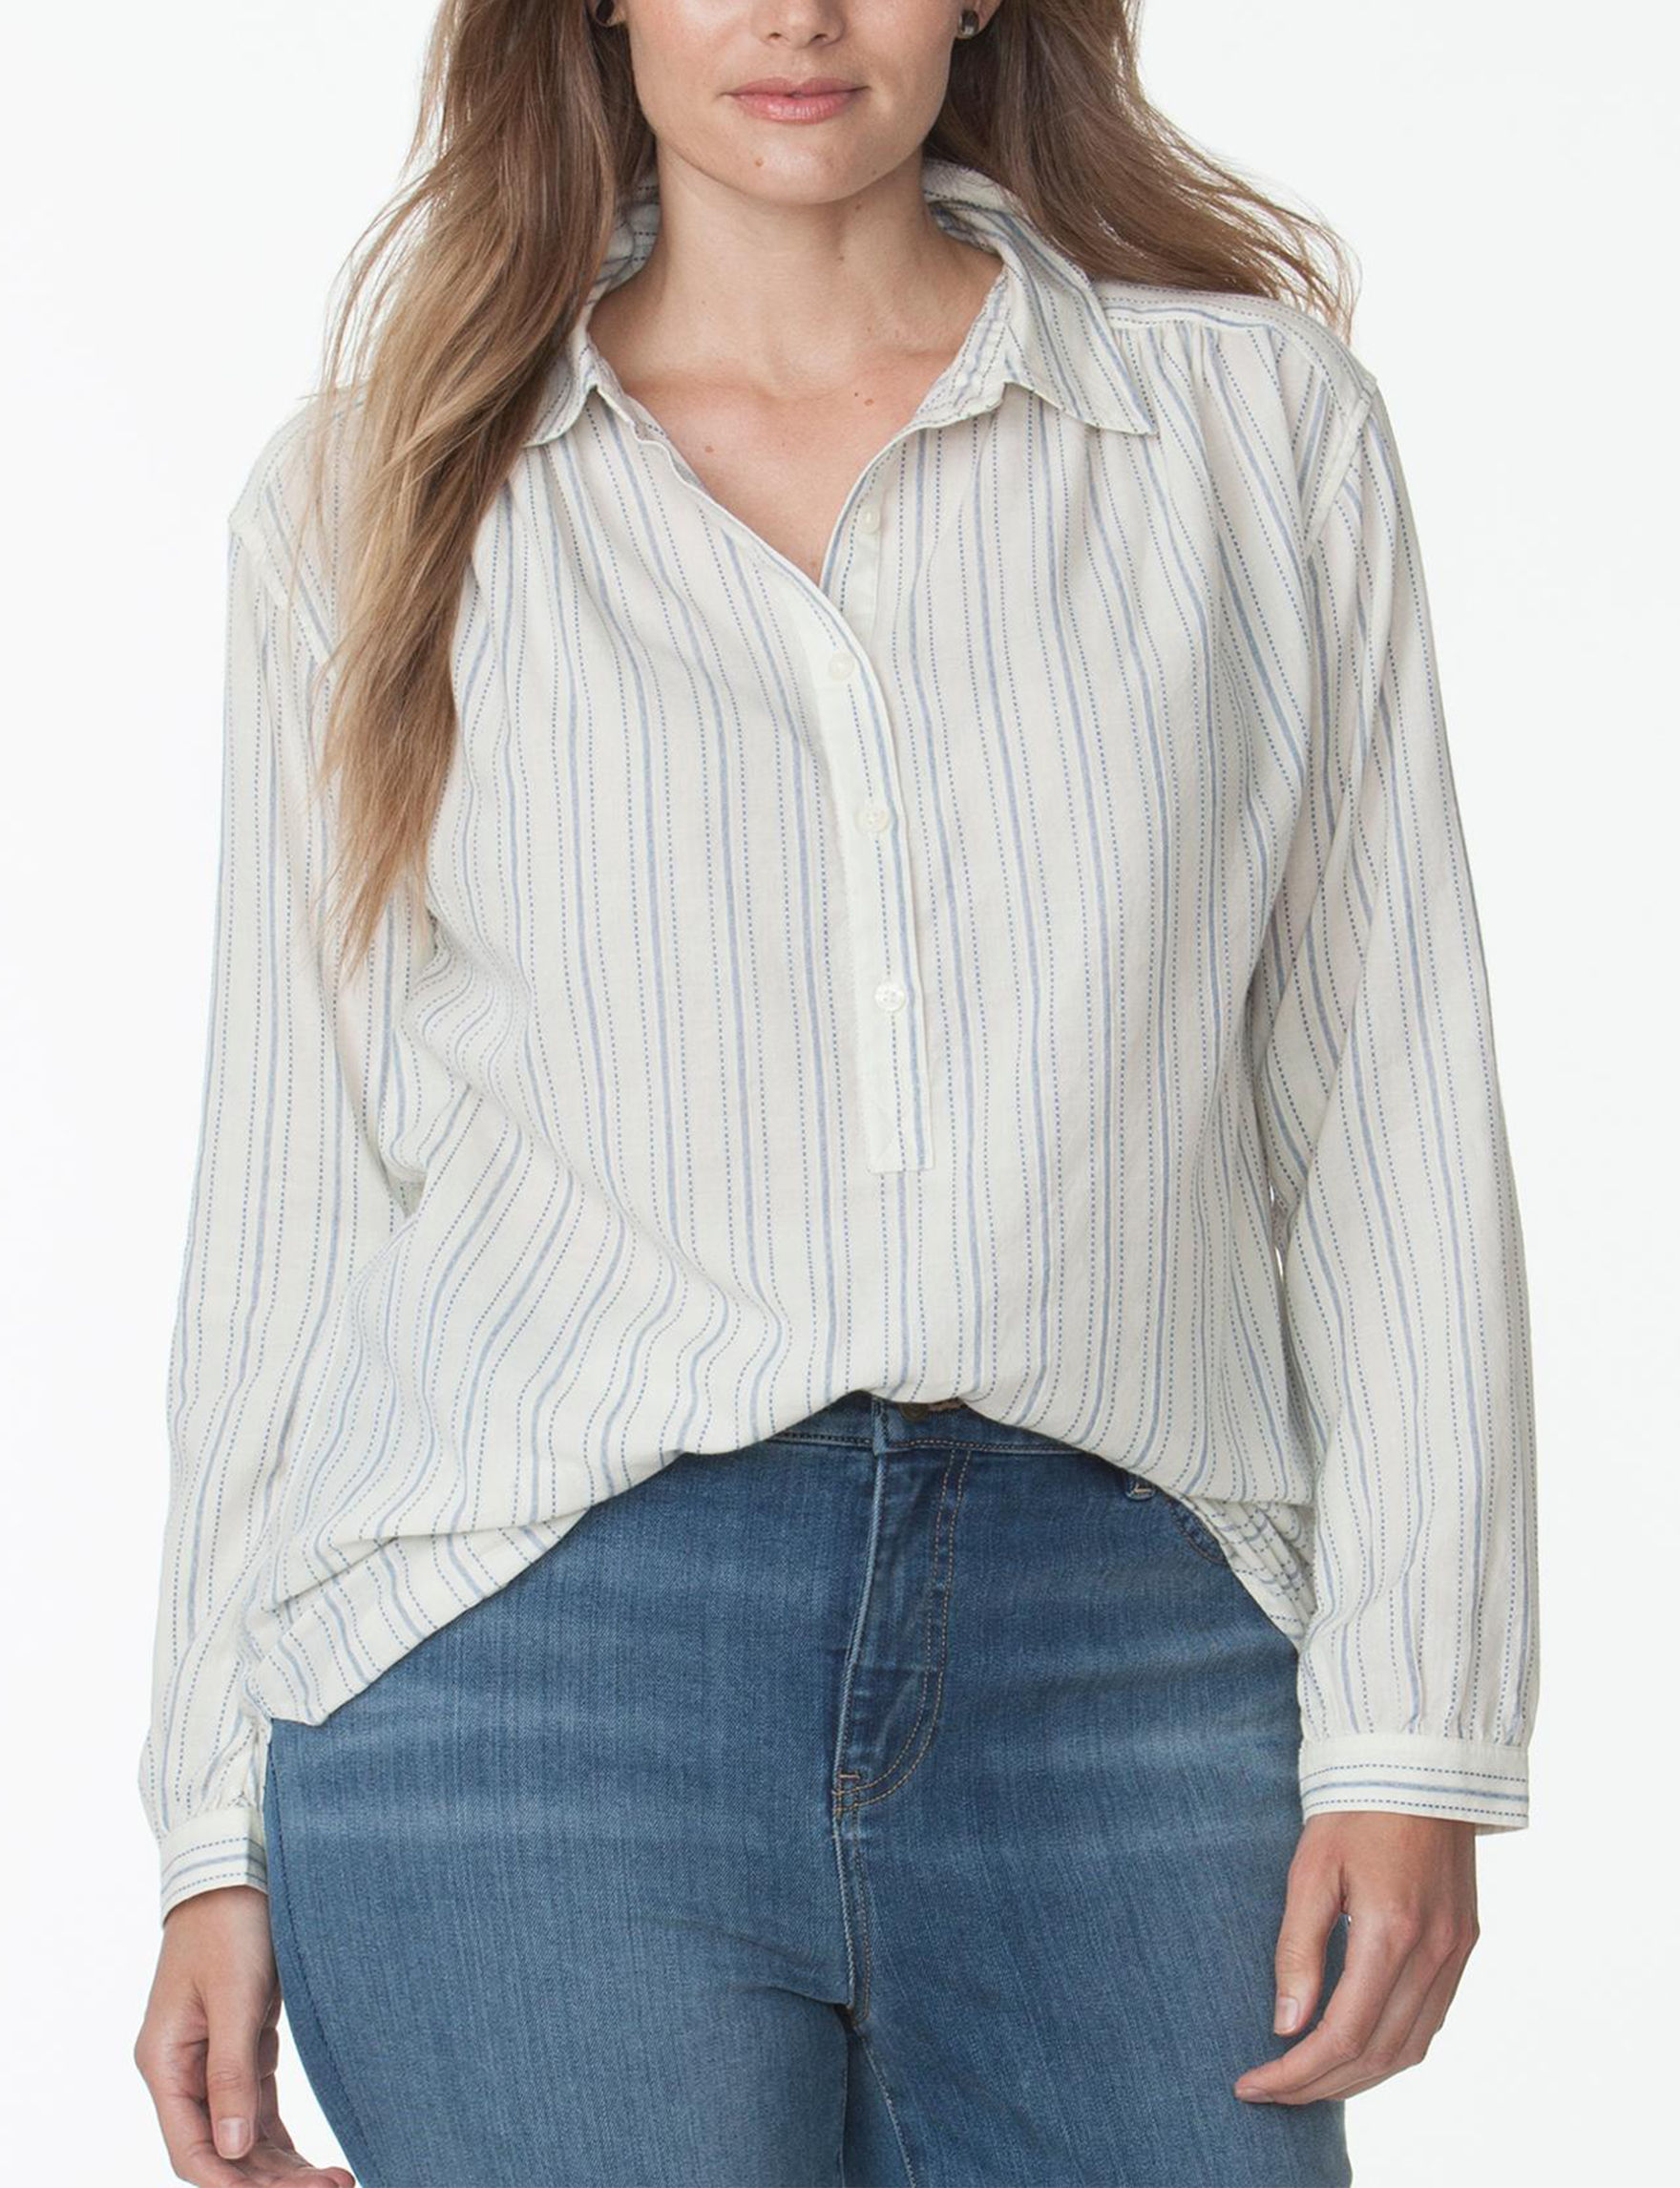 Chaps Blue/ Cream Shirts & Blouses